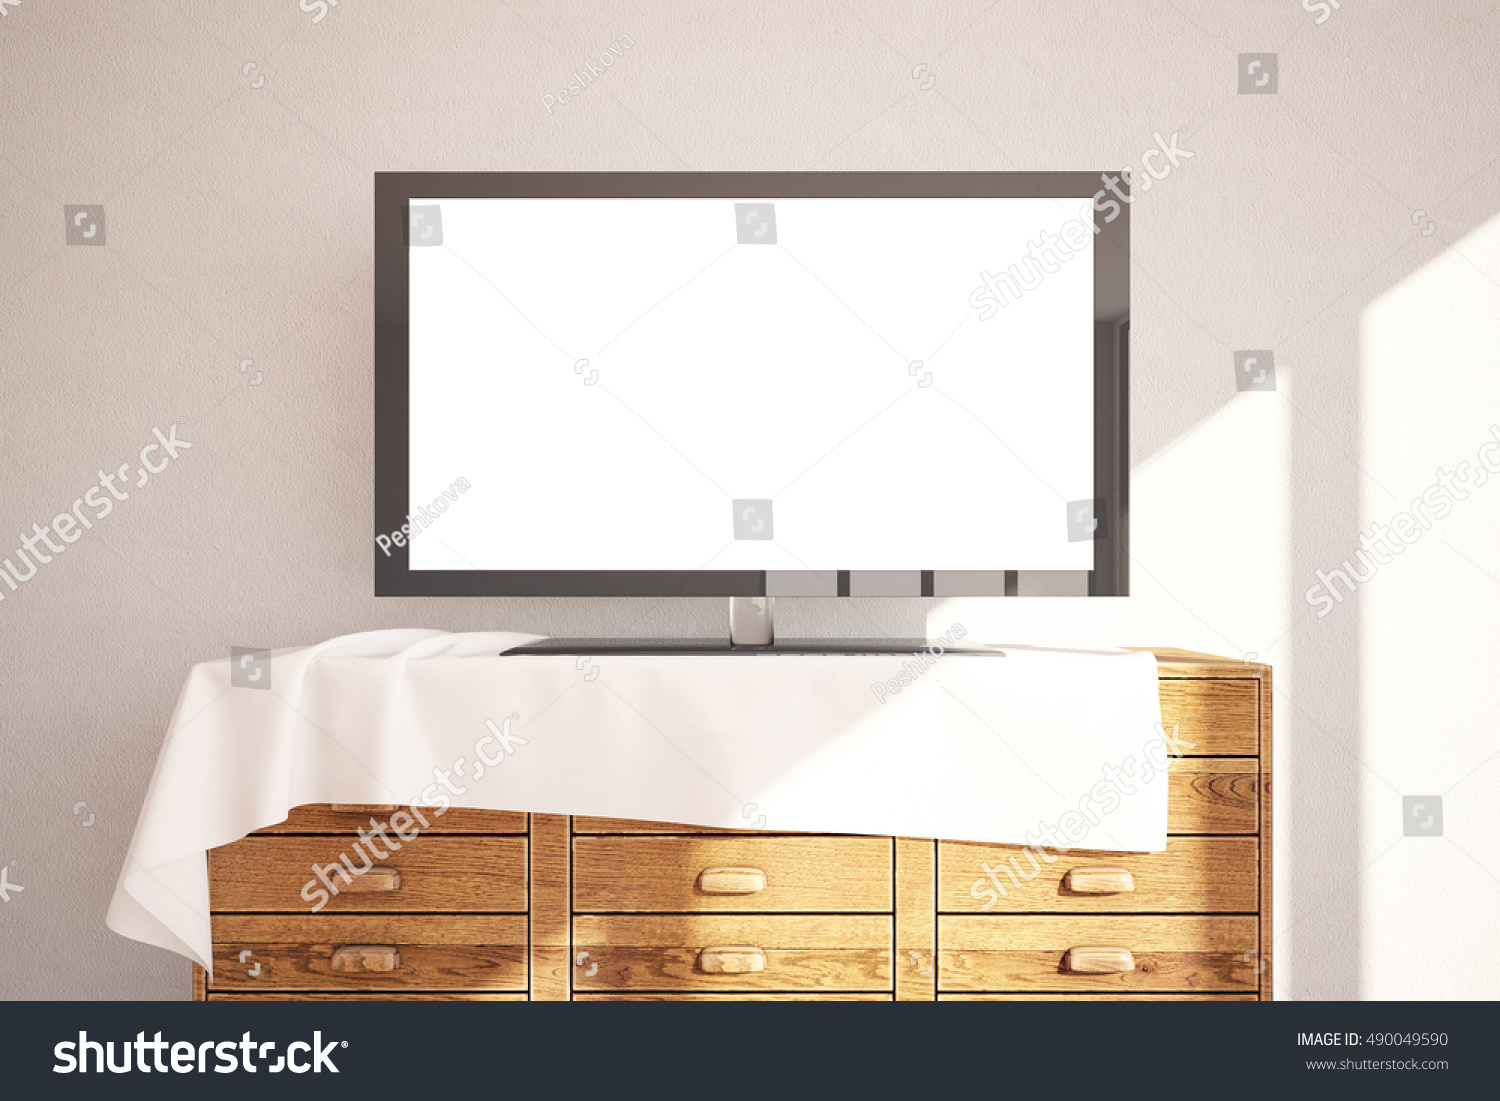 Plain wood table with hipster brick wall background stock photo - Front View Of Empty White Tv Screen Placed On Wooden Cupboard With Cloth On Concrete Wall